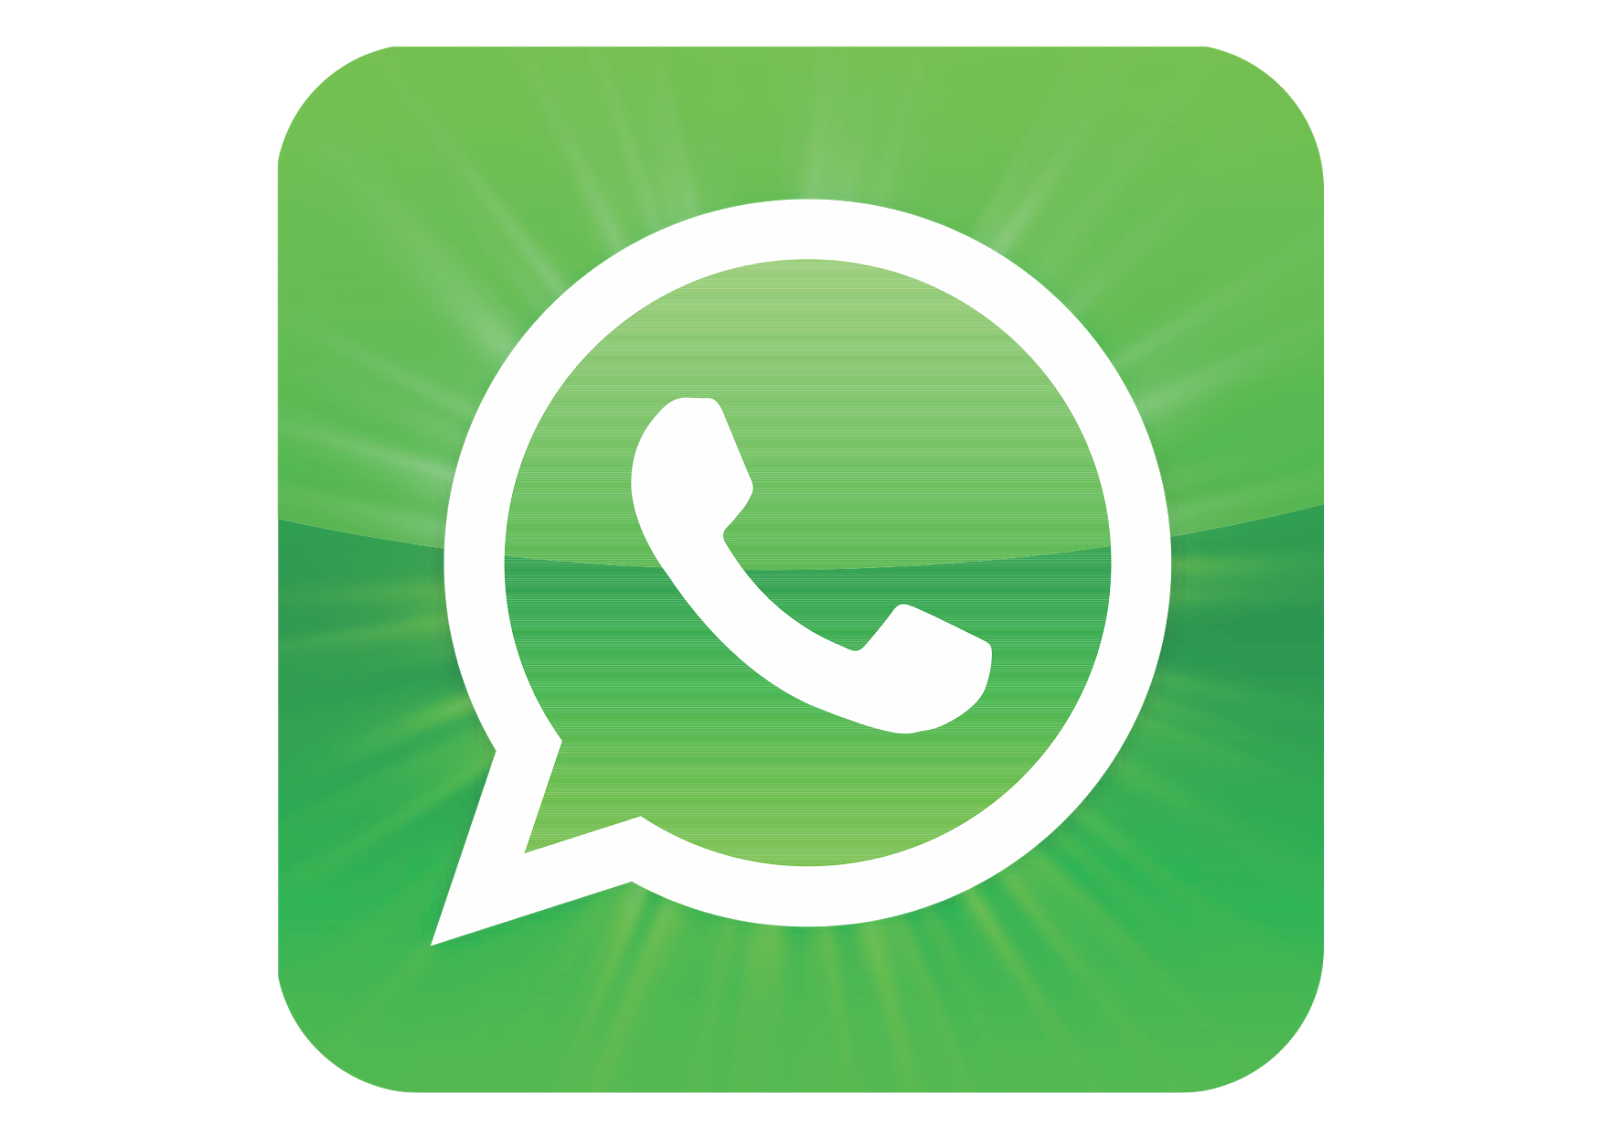 whatsapp logo l...